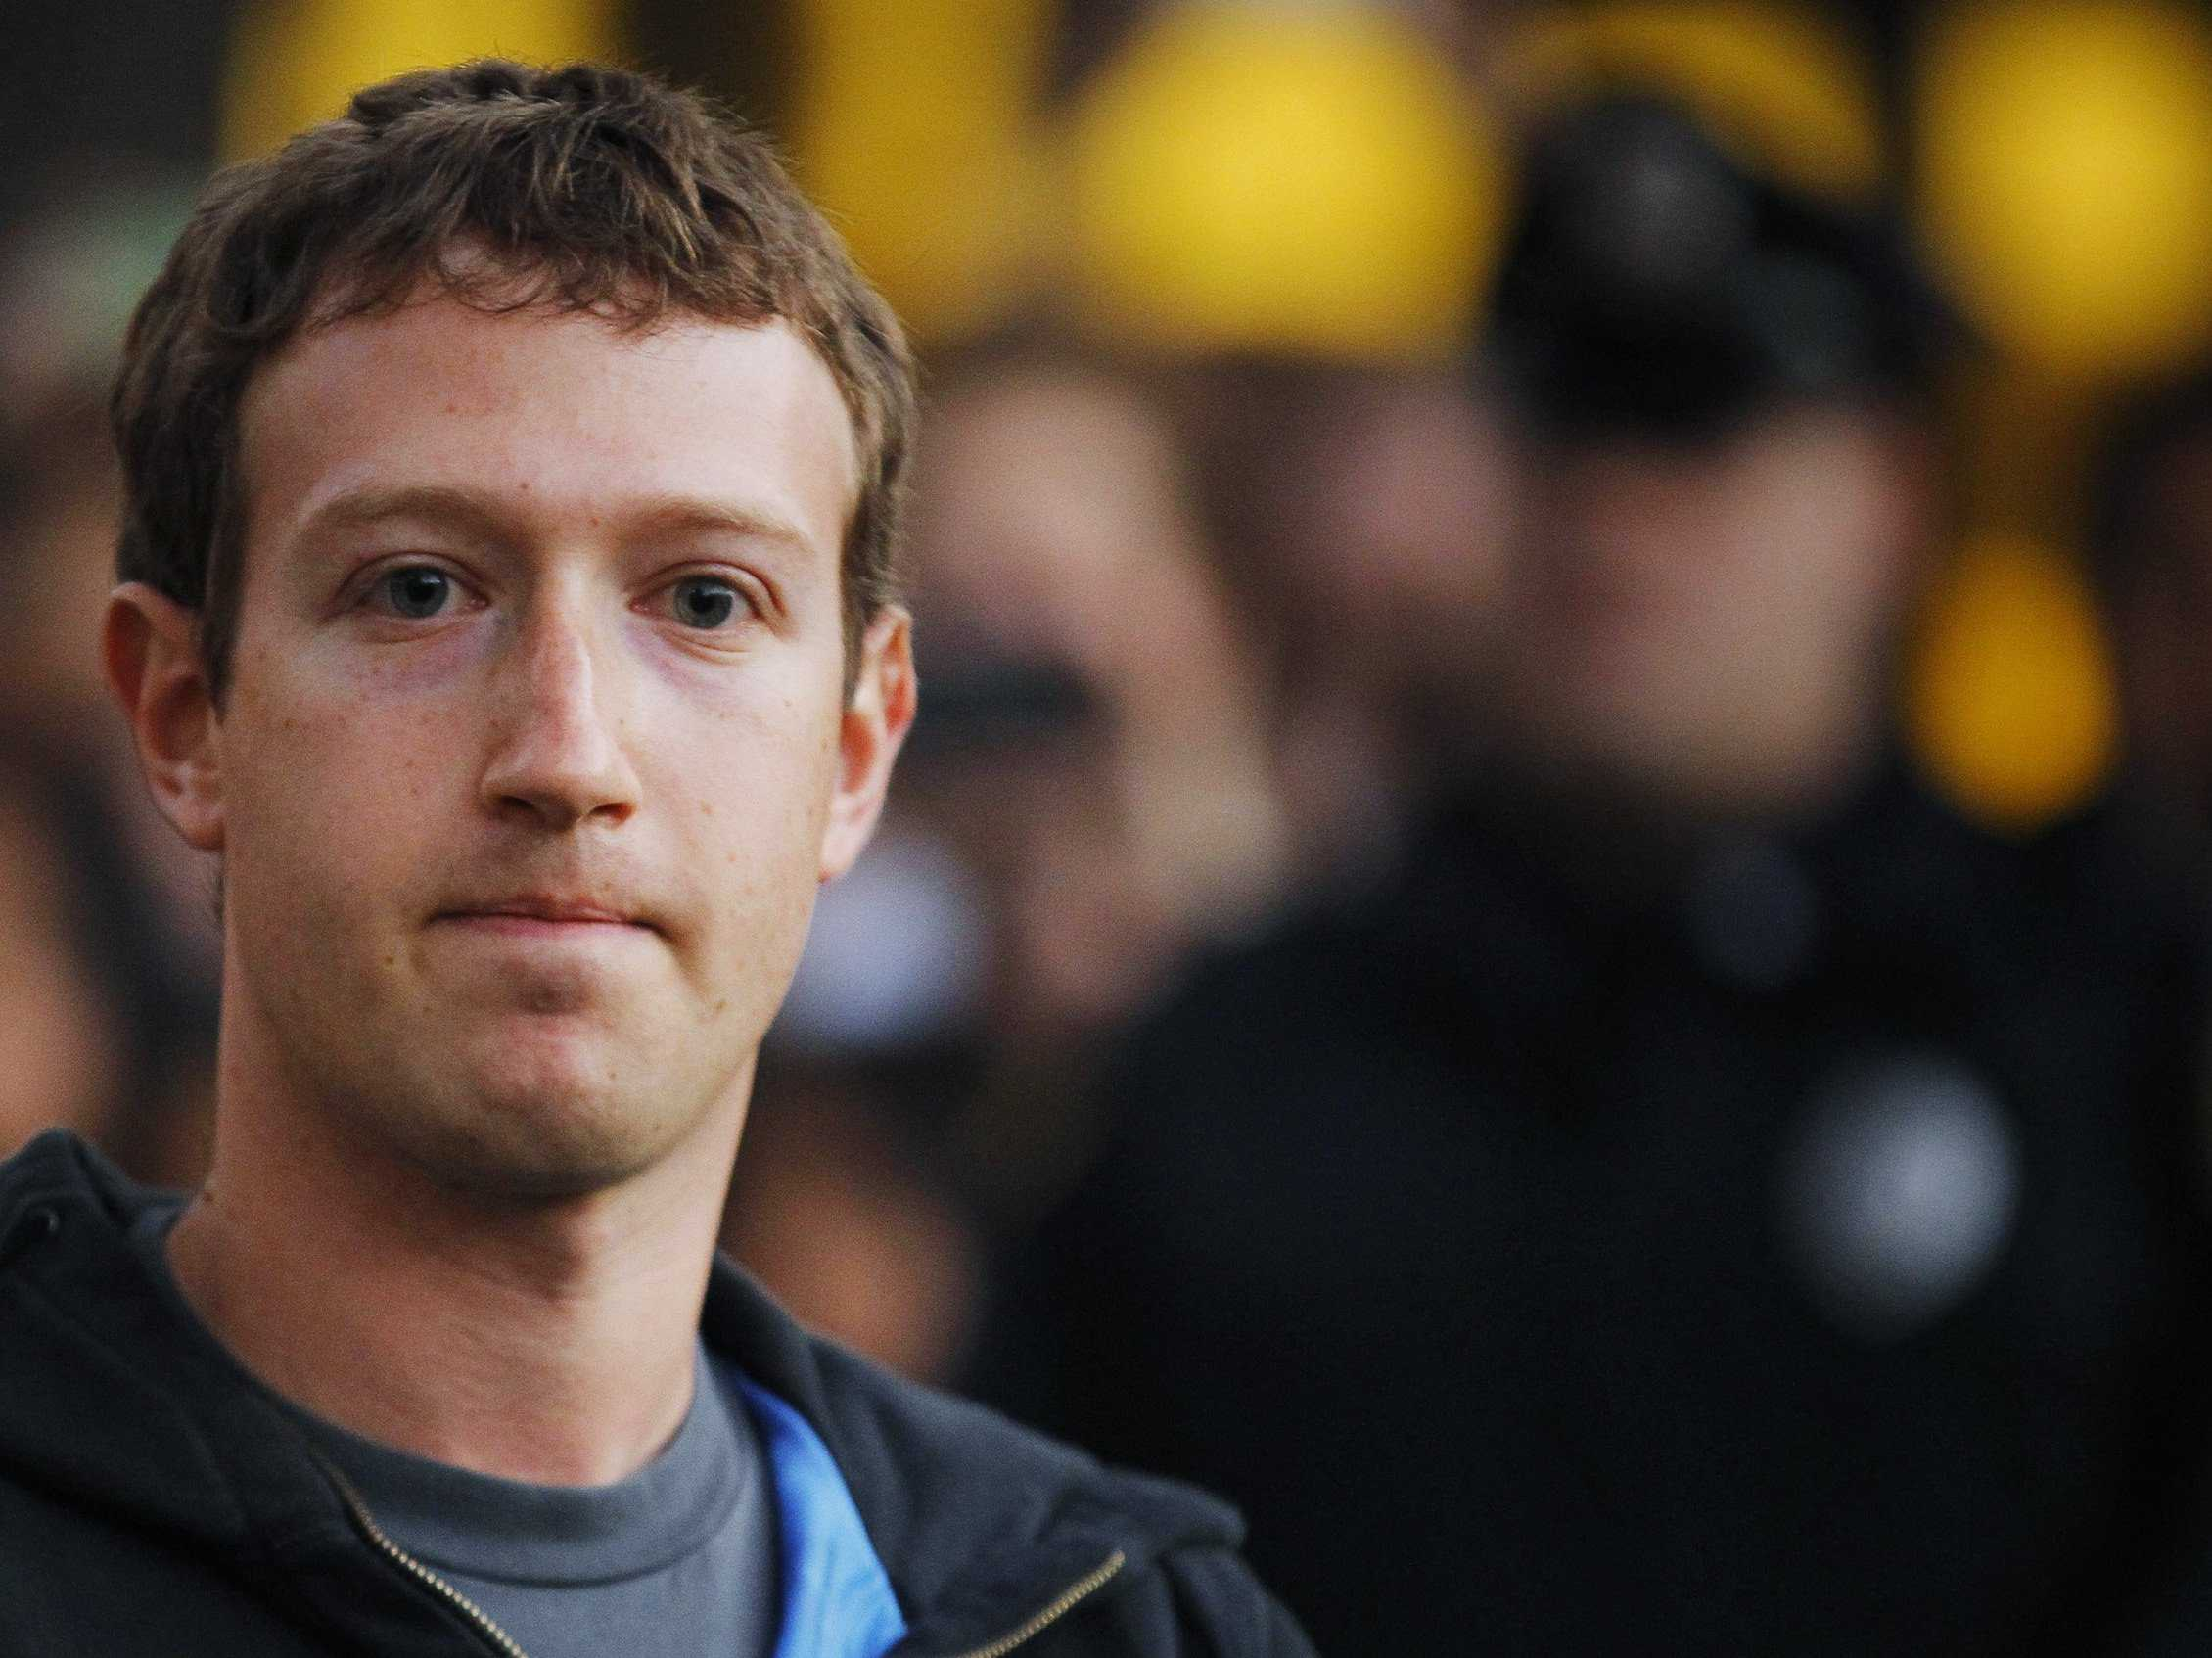 mark-zuckerberg-says-immigration-reform-is-the-right-thing-to-do